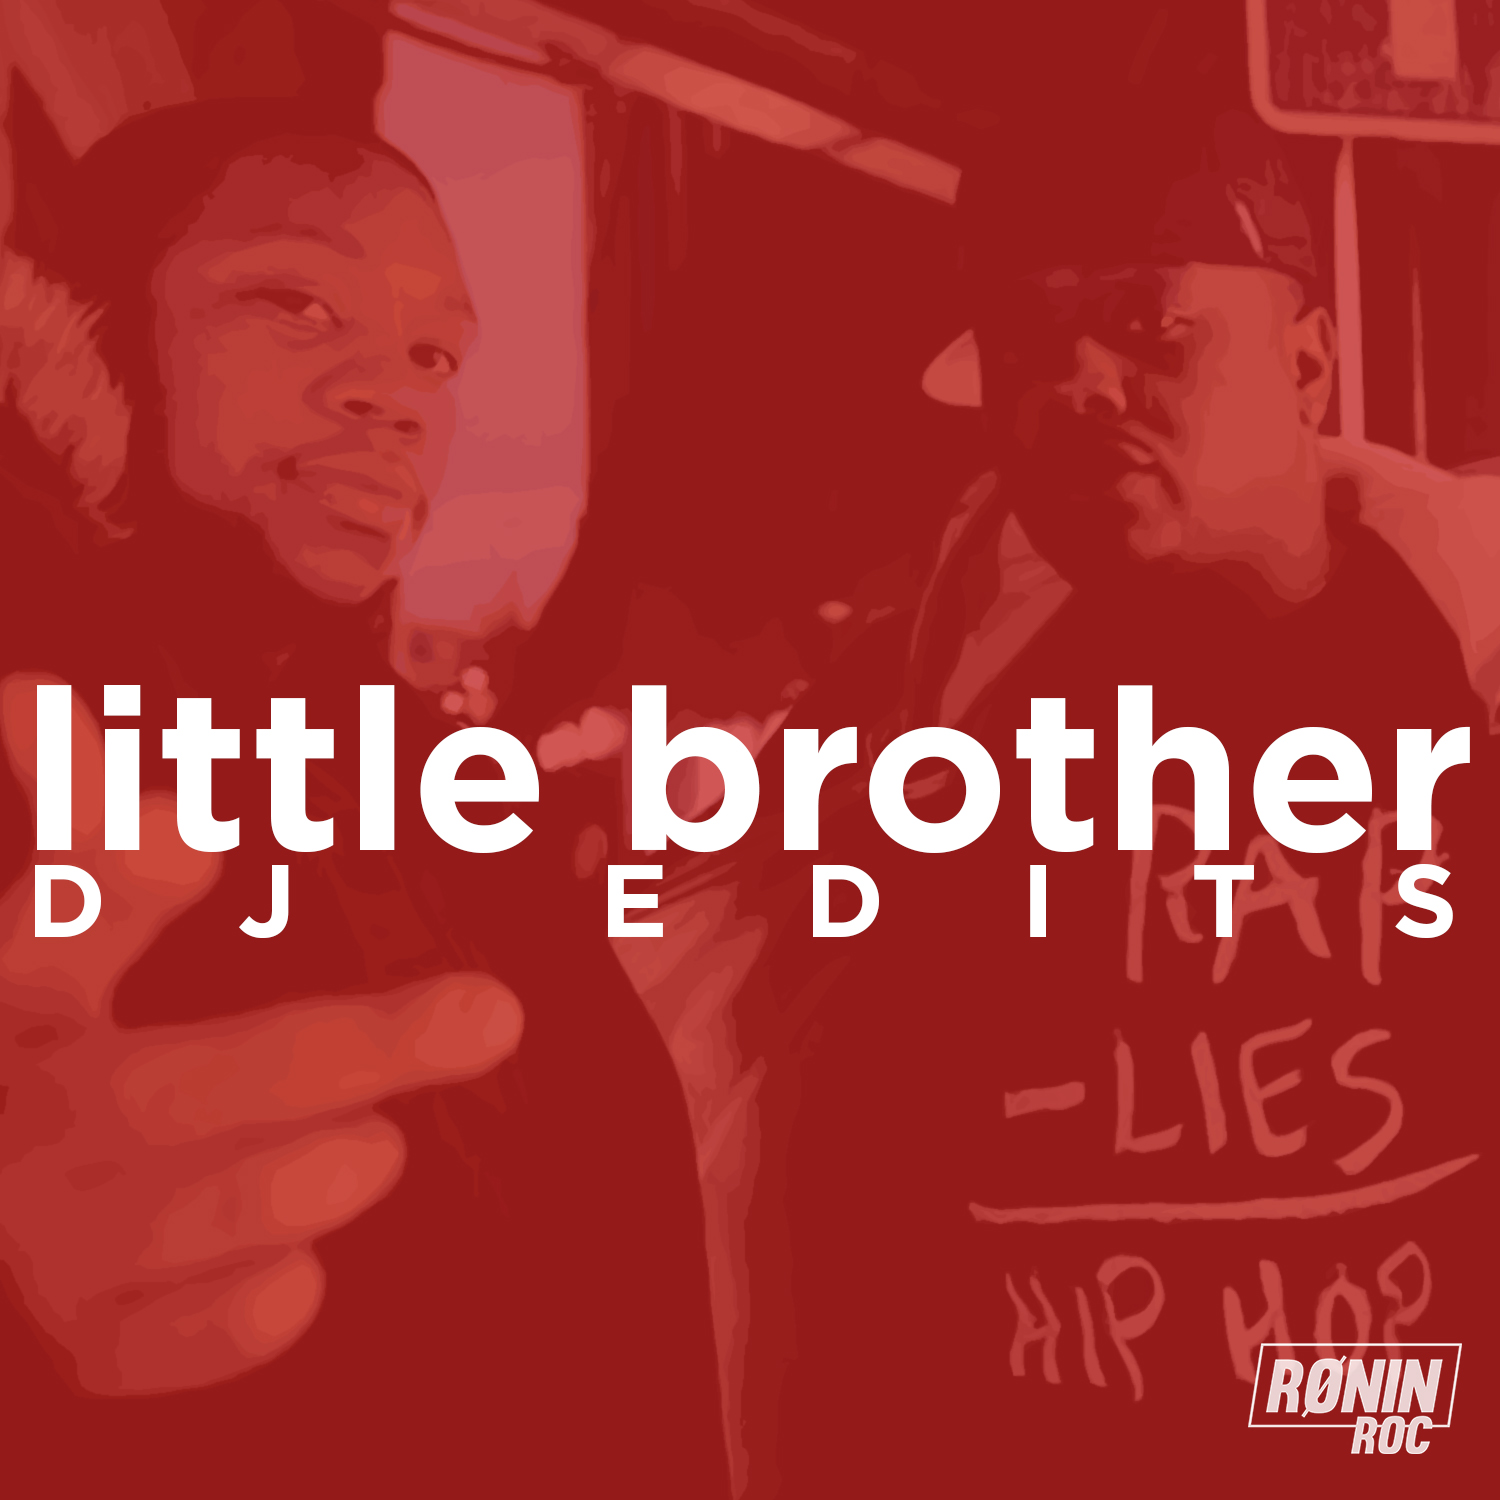 littlebrother dj edits image.jpg